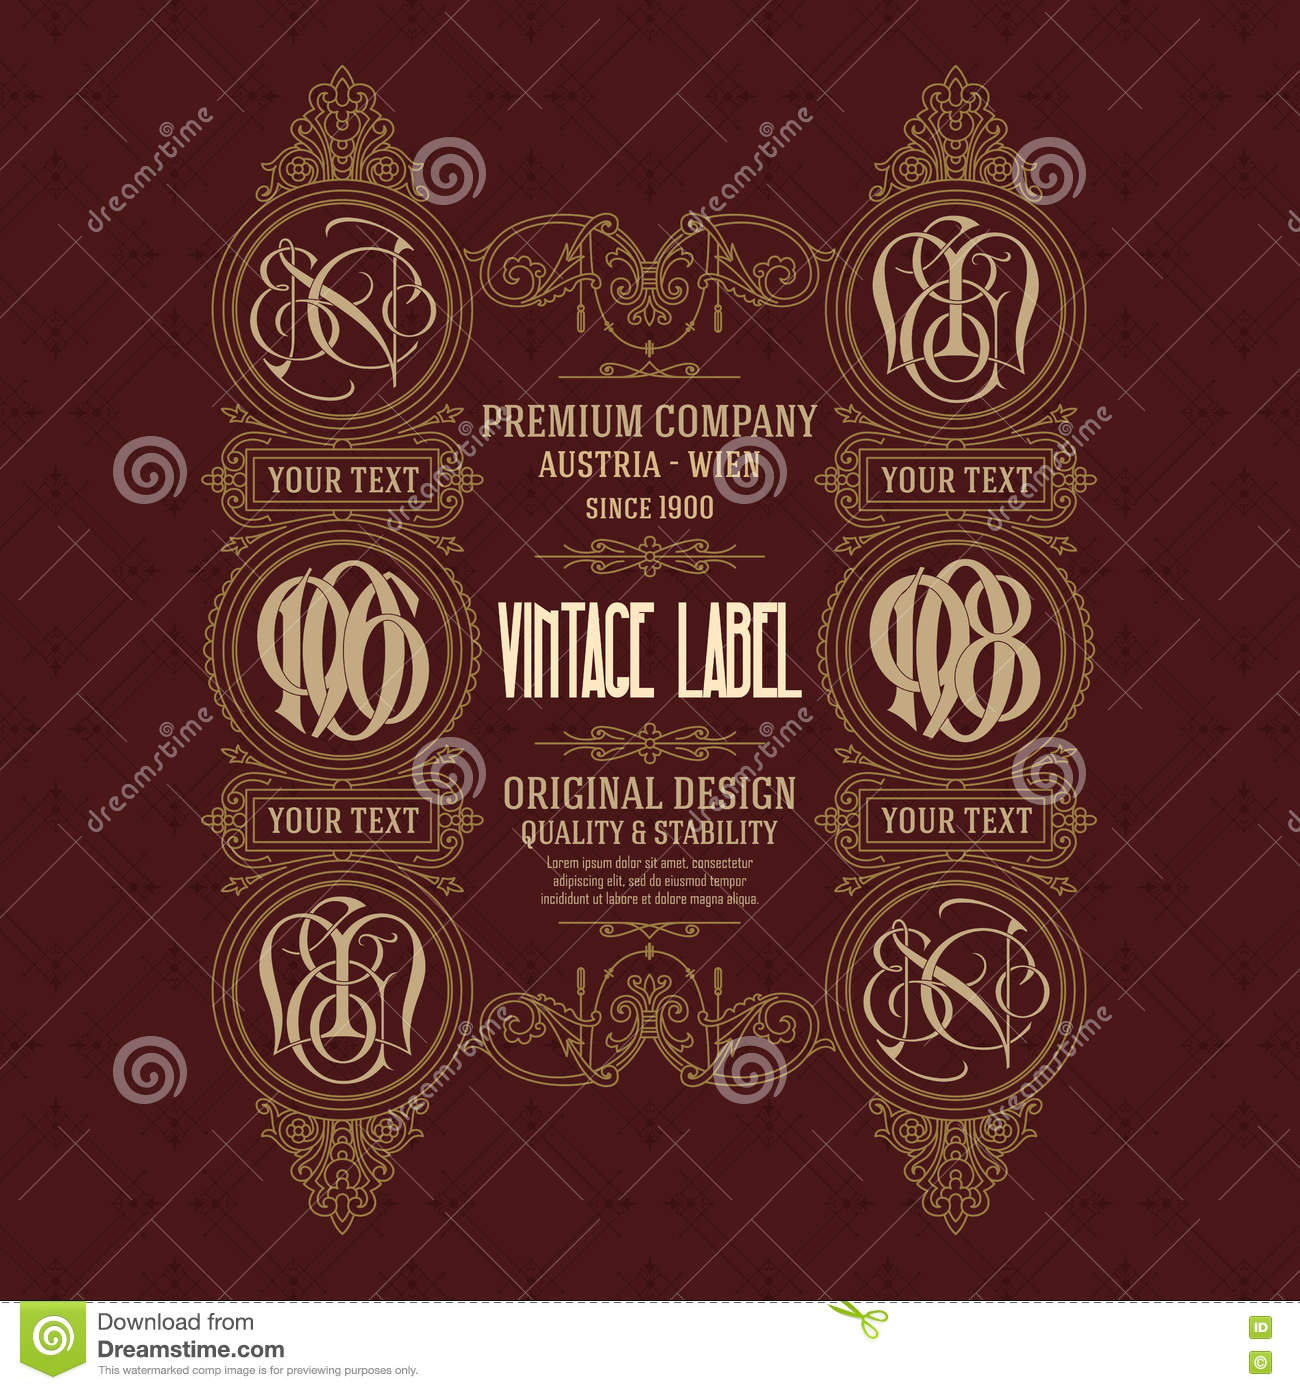 Old Vintage Card With Floral Ornament Stock Vector - Illustration of ...